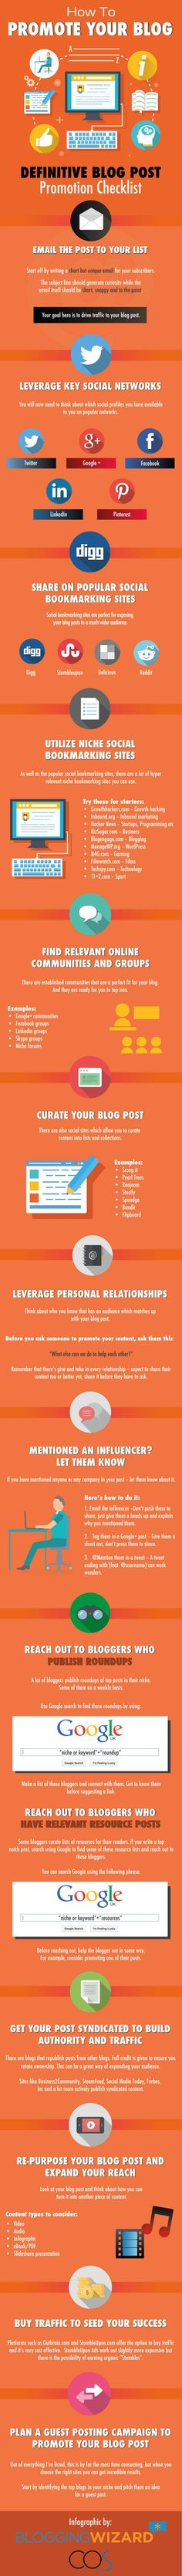 How to promote your blog #infographic